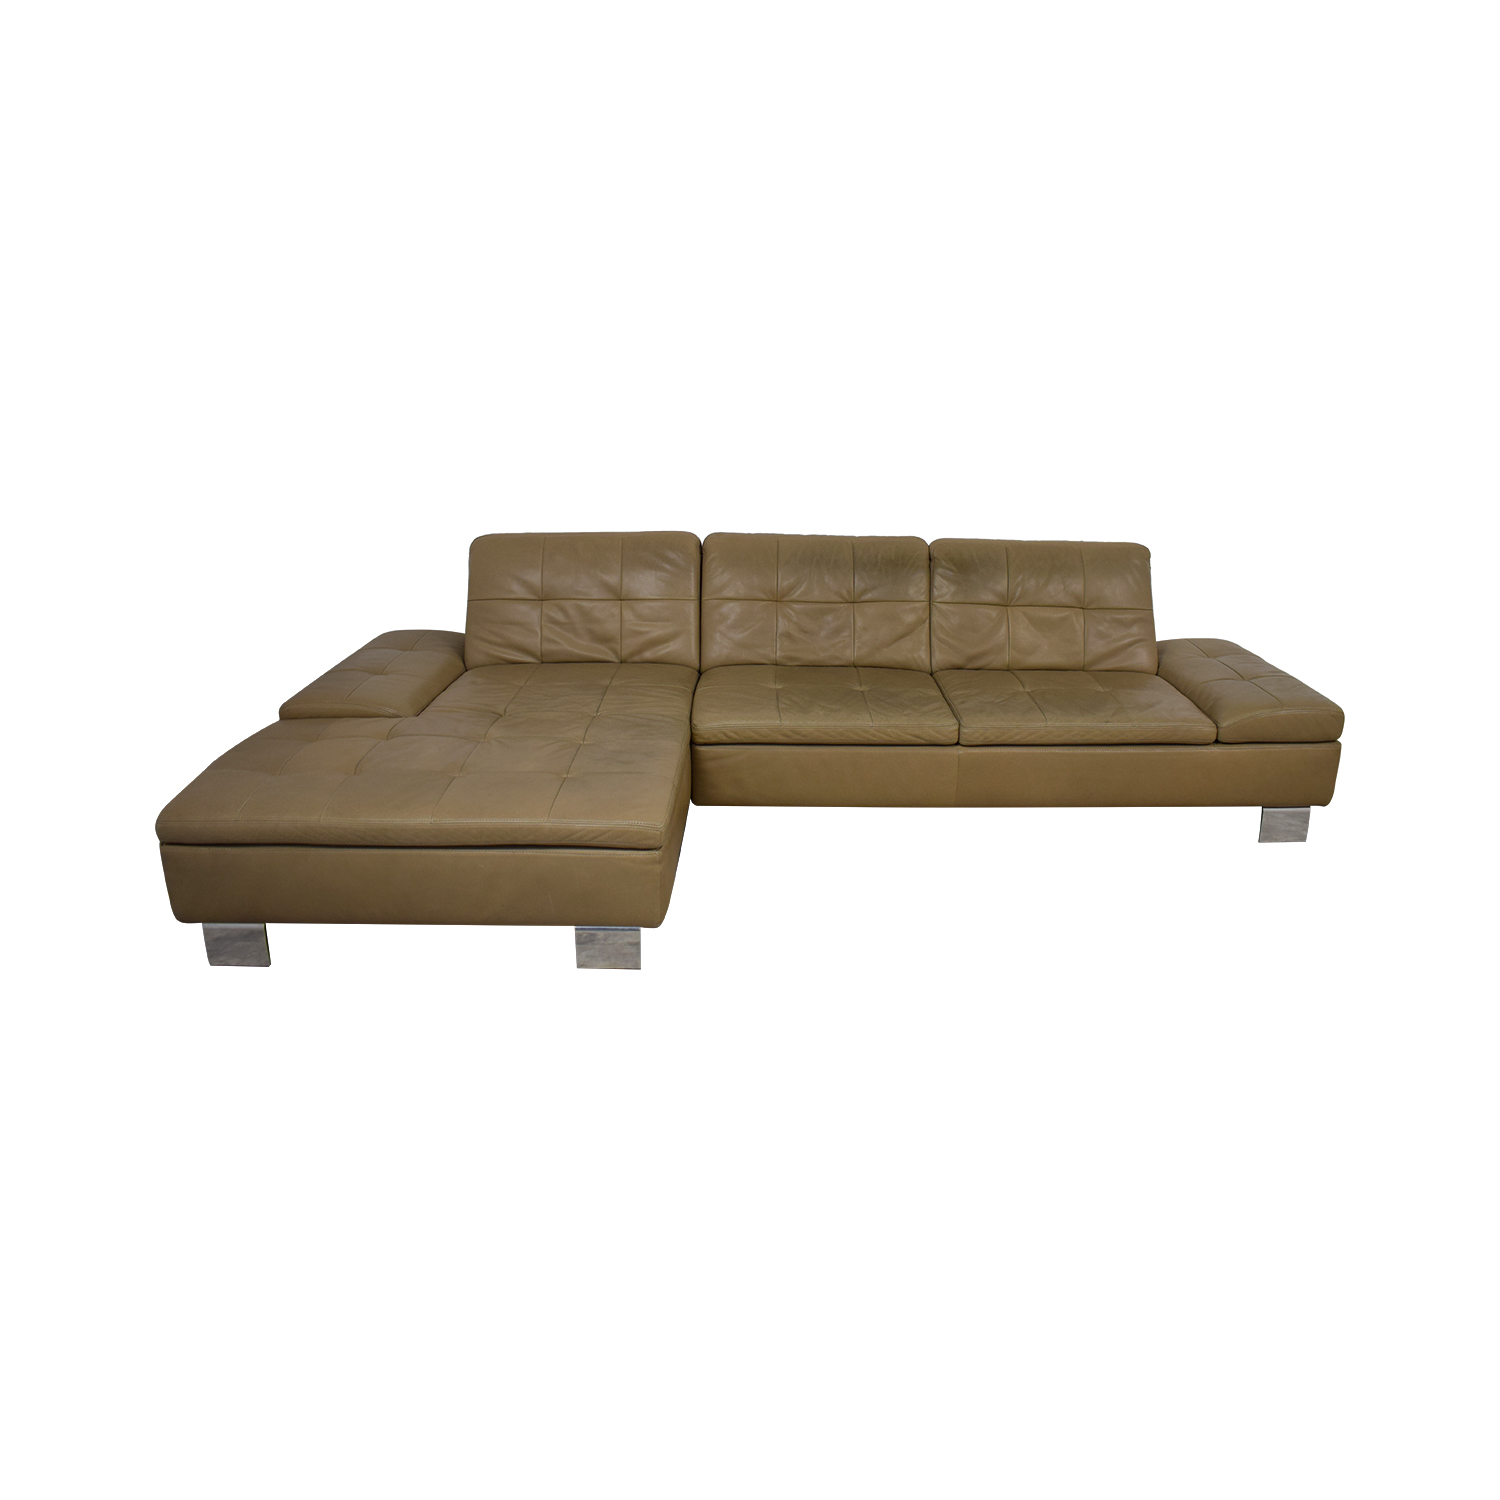 W. Schillig W. Schillig Contemporary Sectional Sofa in Natural Leather used